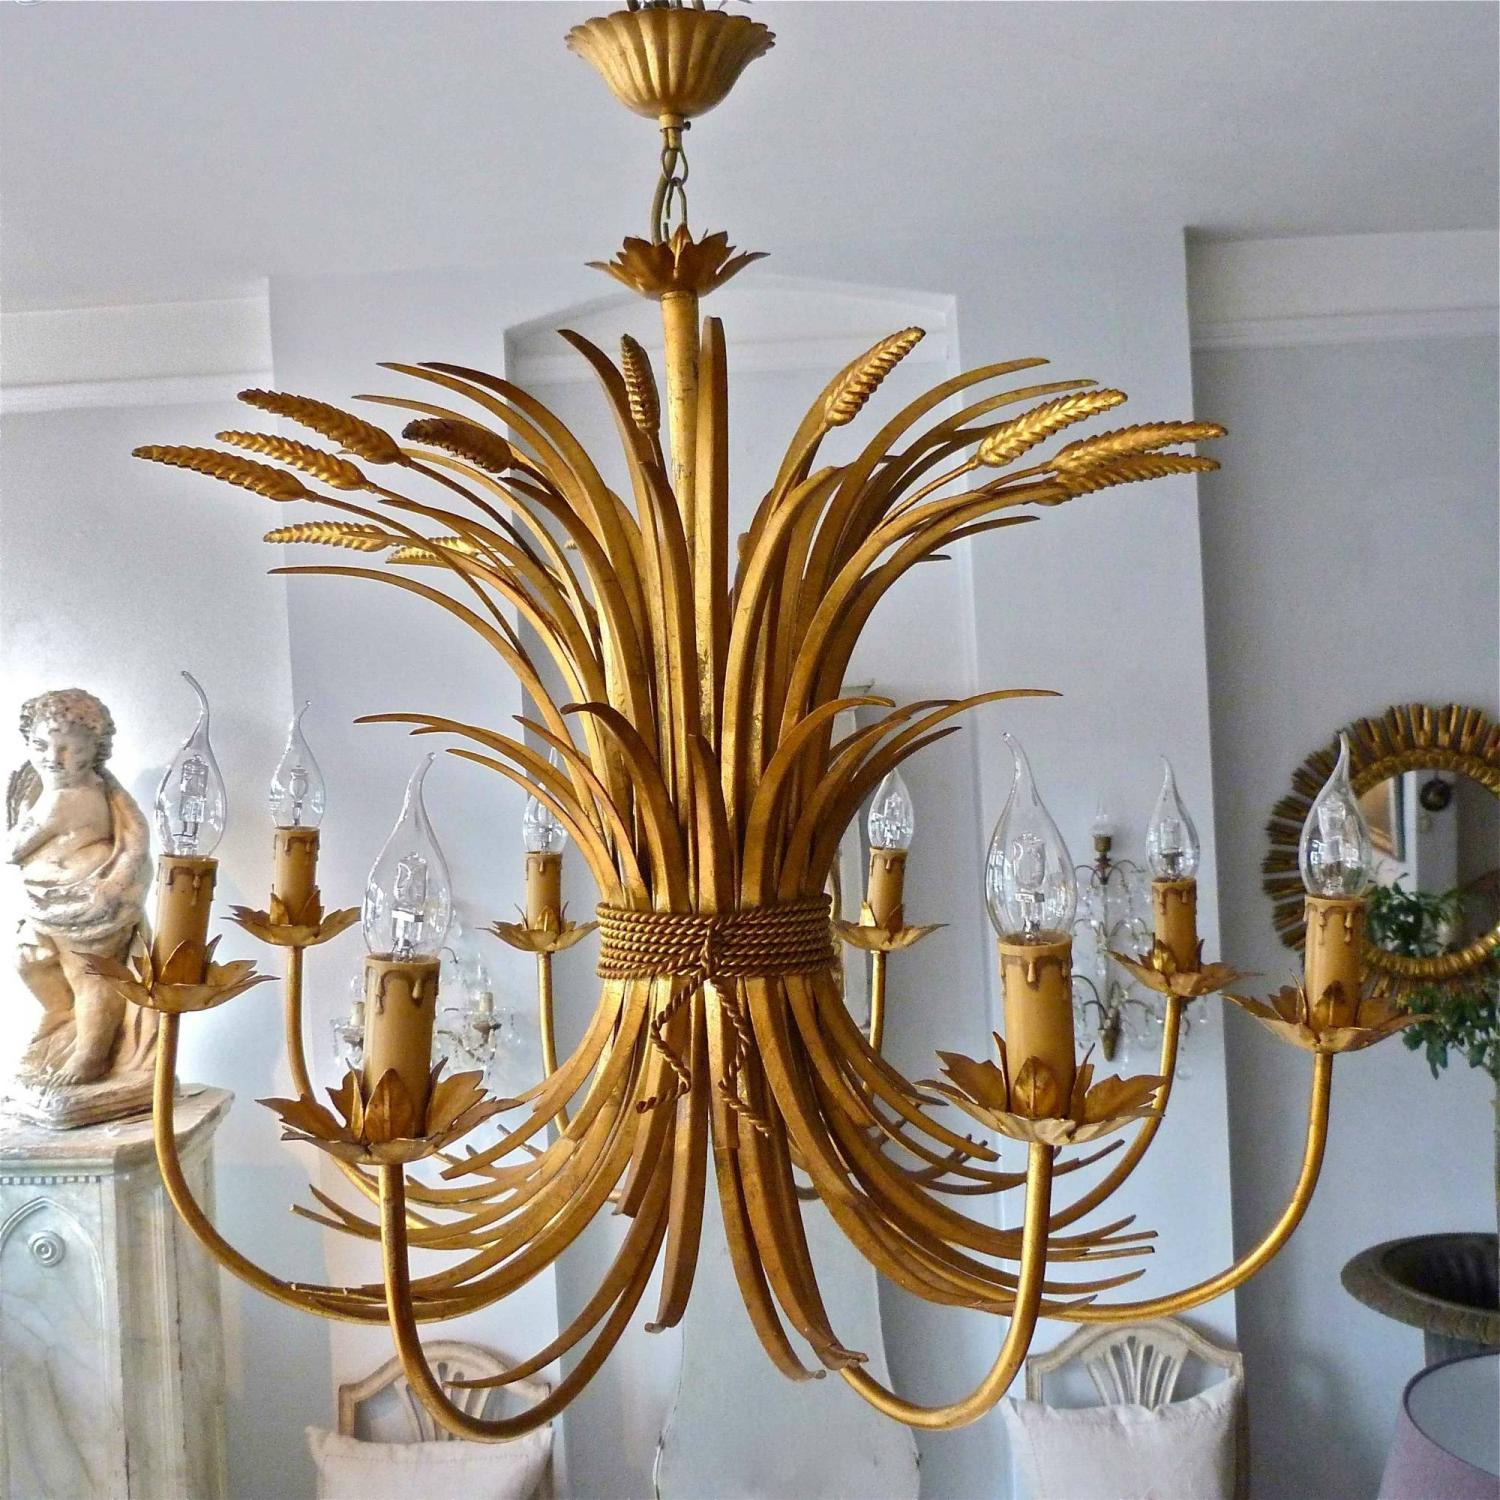 LARGE GILT WHEATSHEAF CHANDELIER